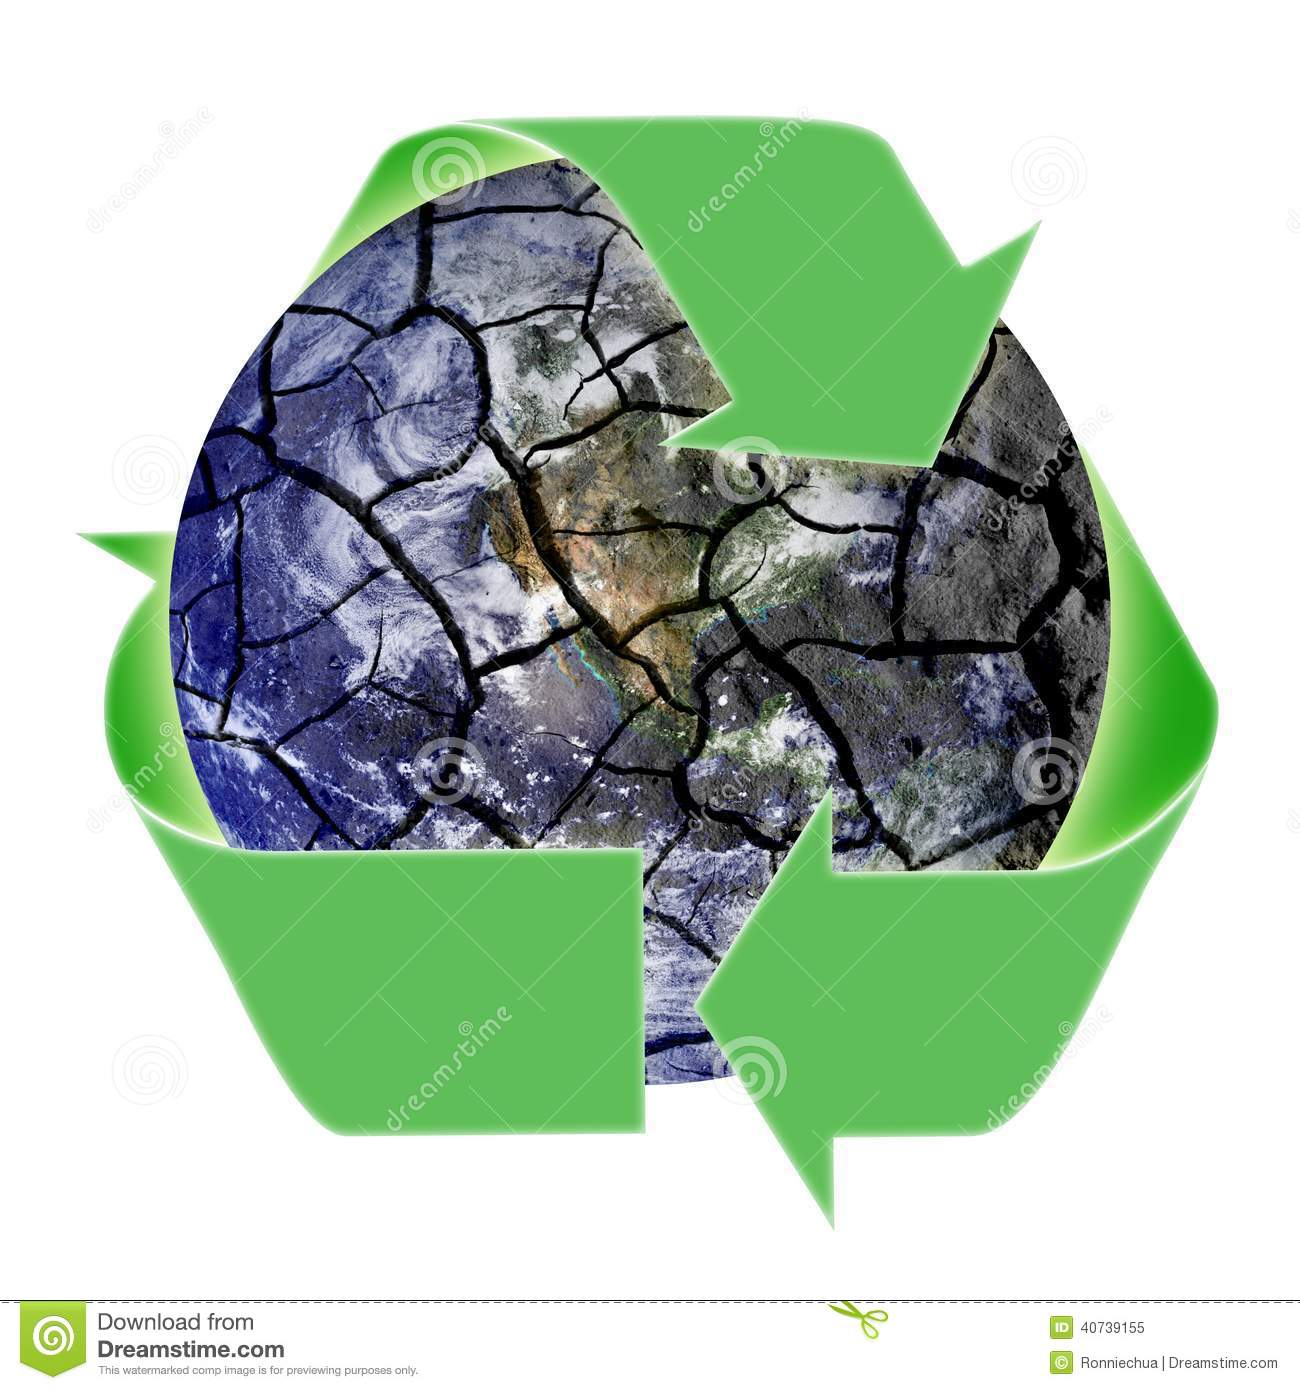 speech recycling and planet earth 5 ways recycling helps the planet published on we can save more trees on earth as such, recycling products is extremely important so that we can help preserve.